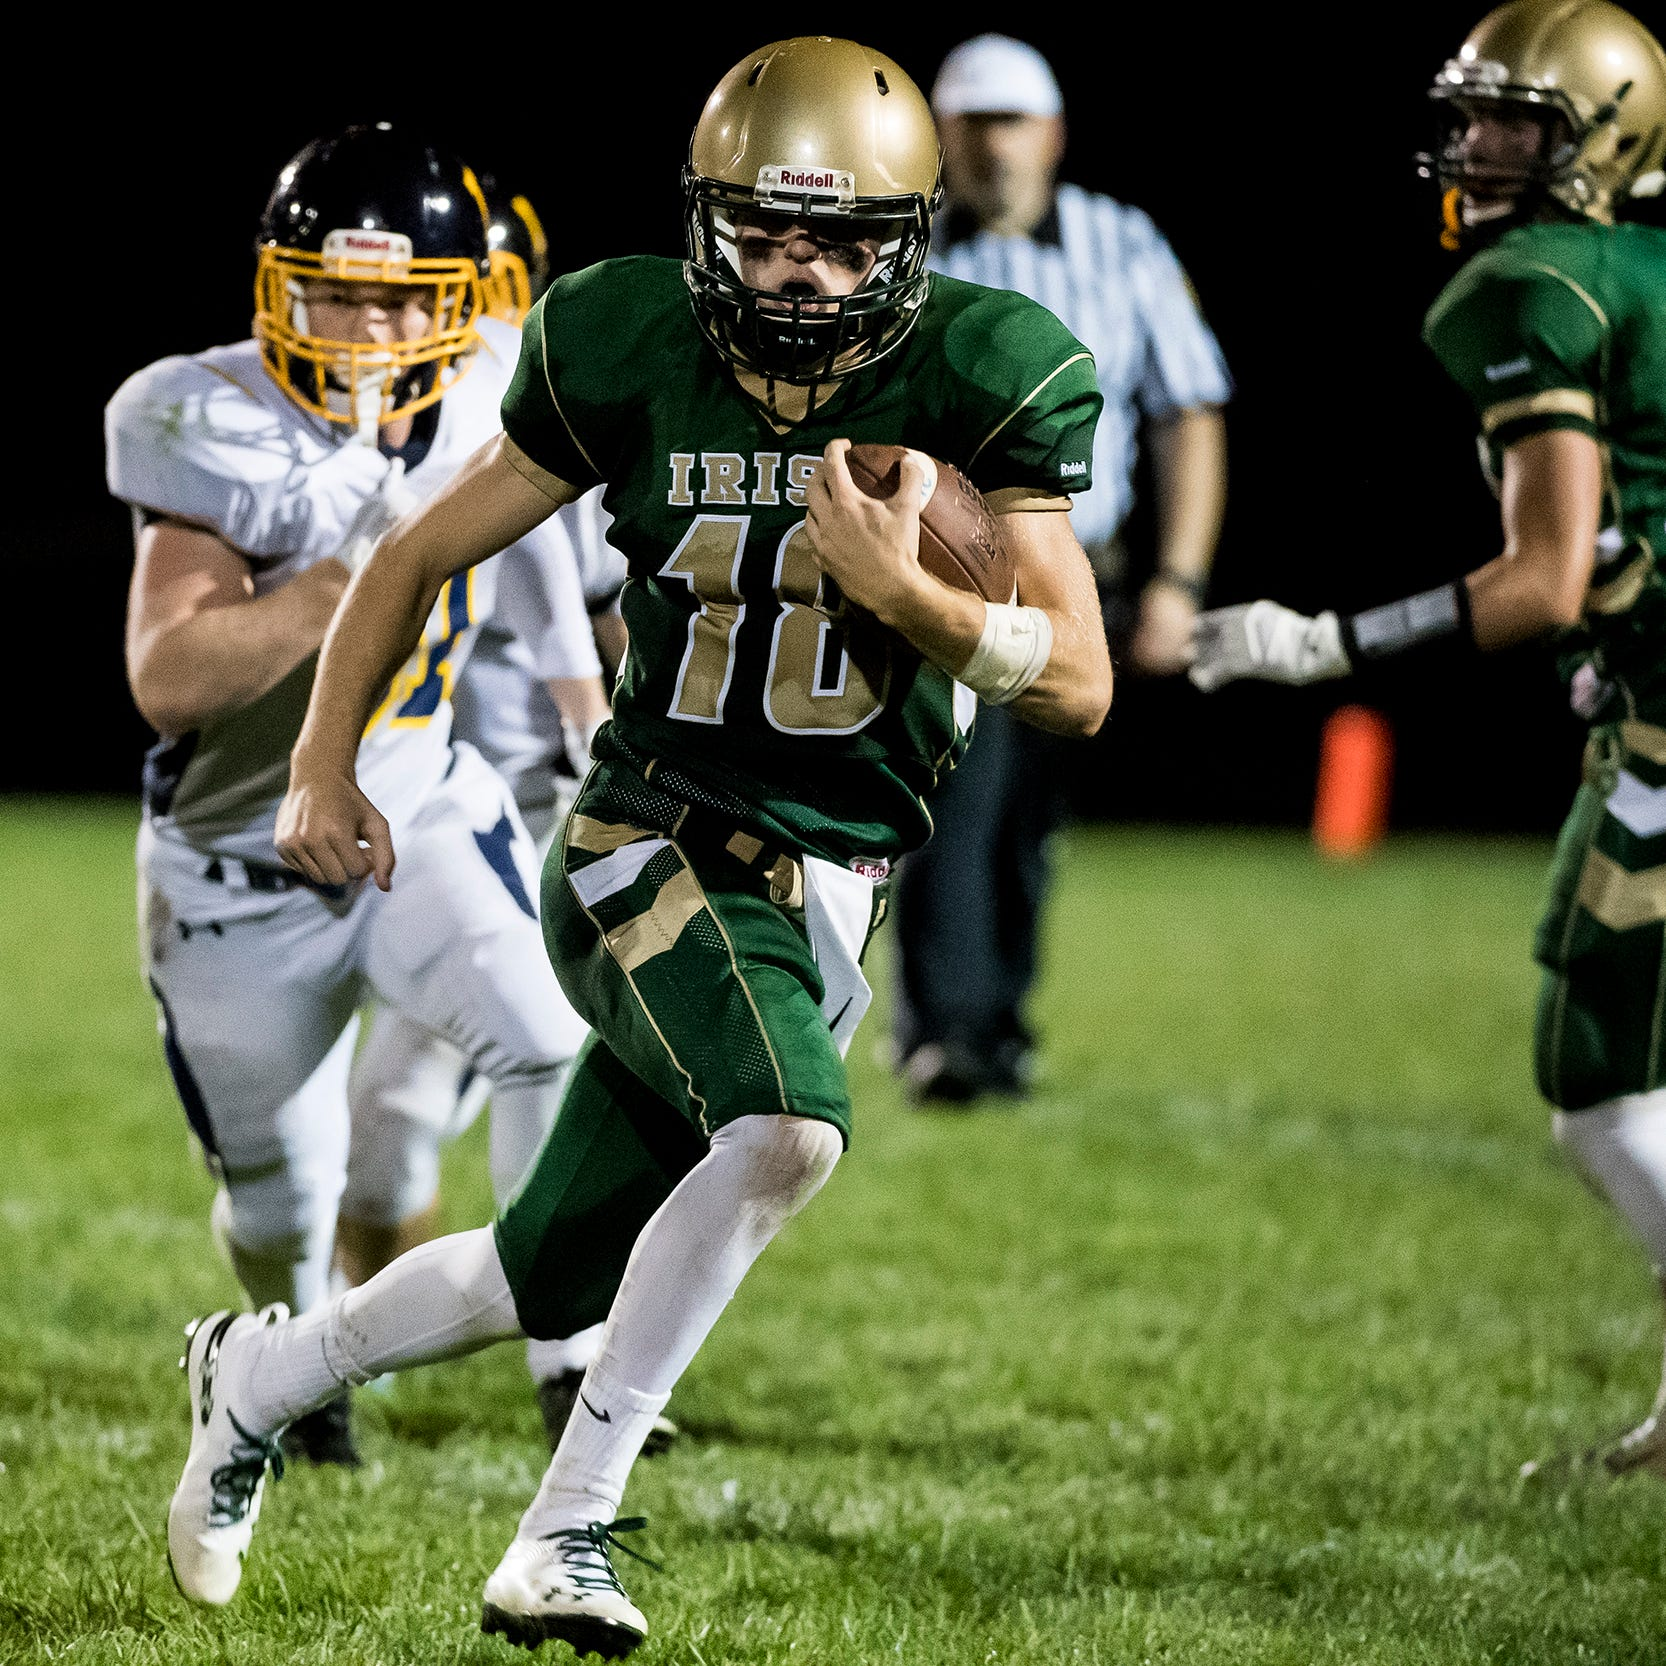 York Catholic edges Littlestown in clash of last year's division co-champs